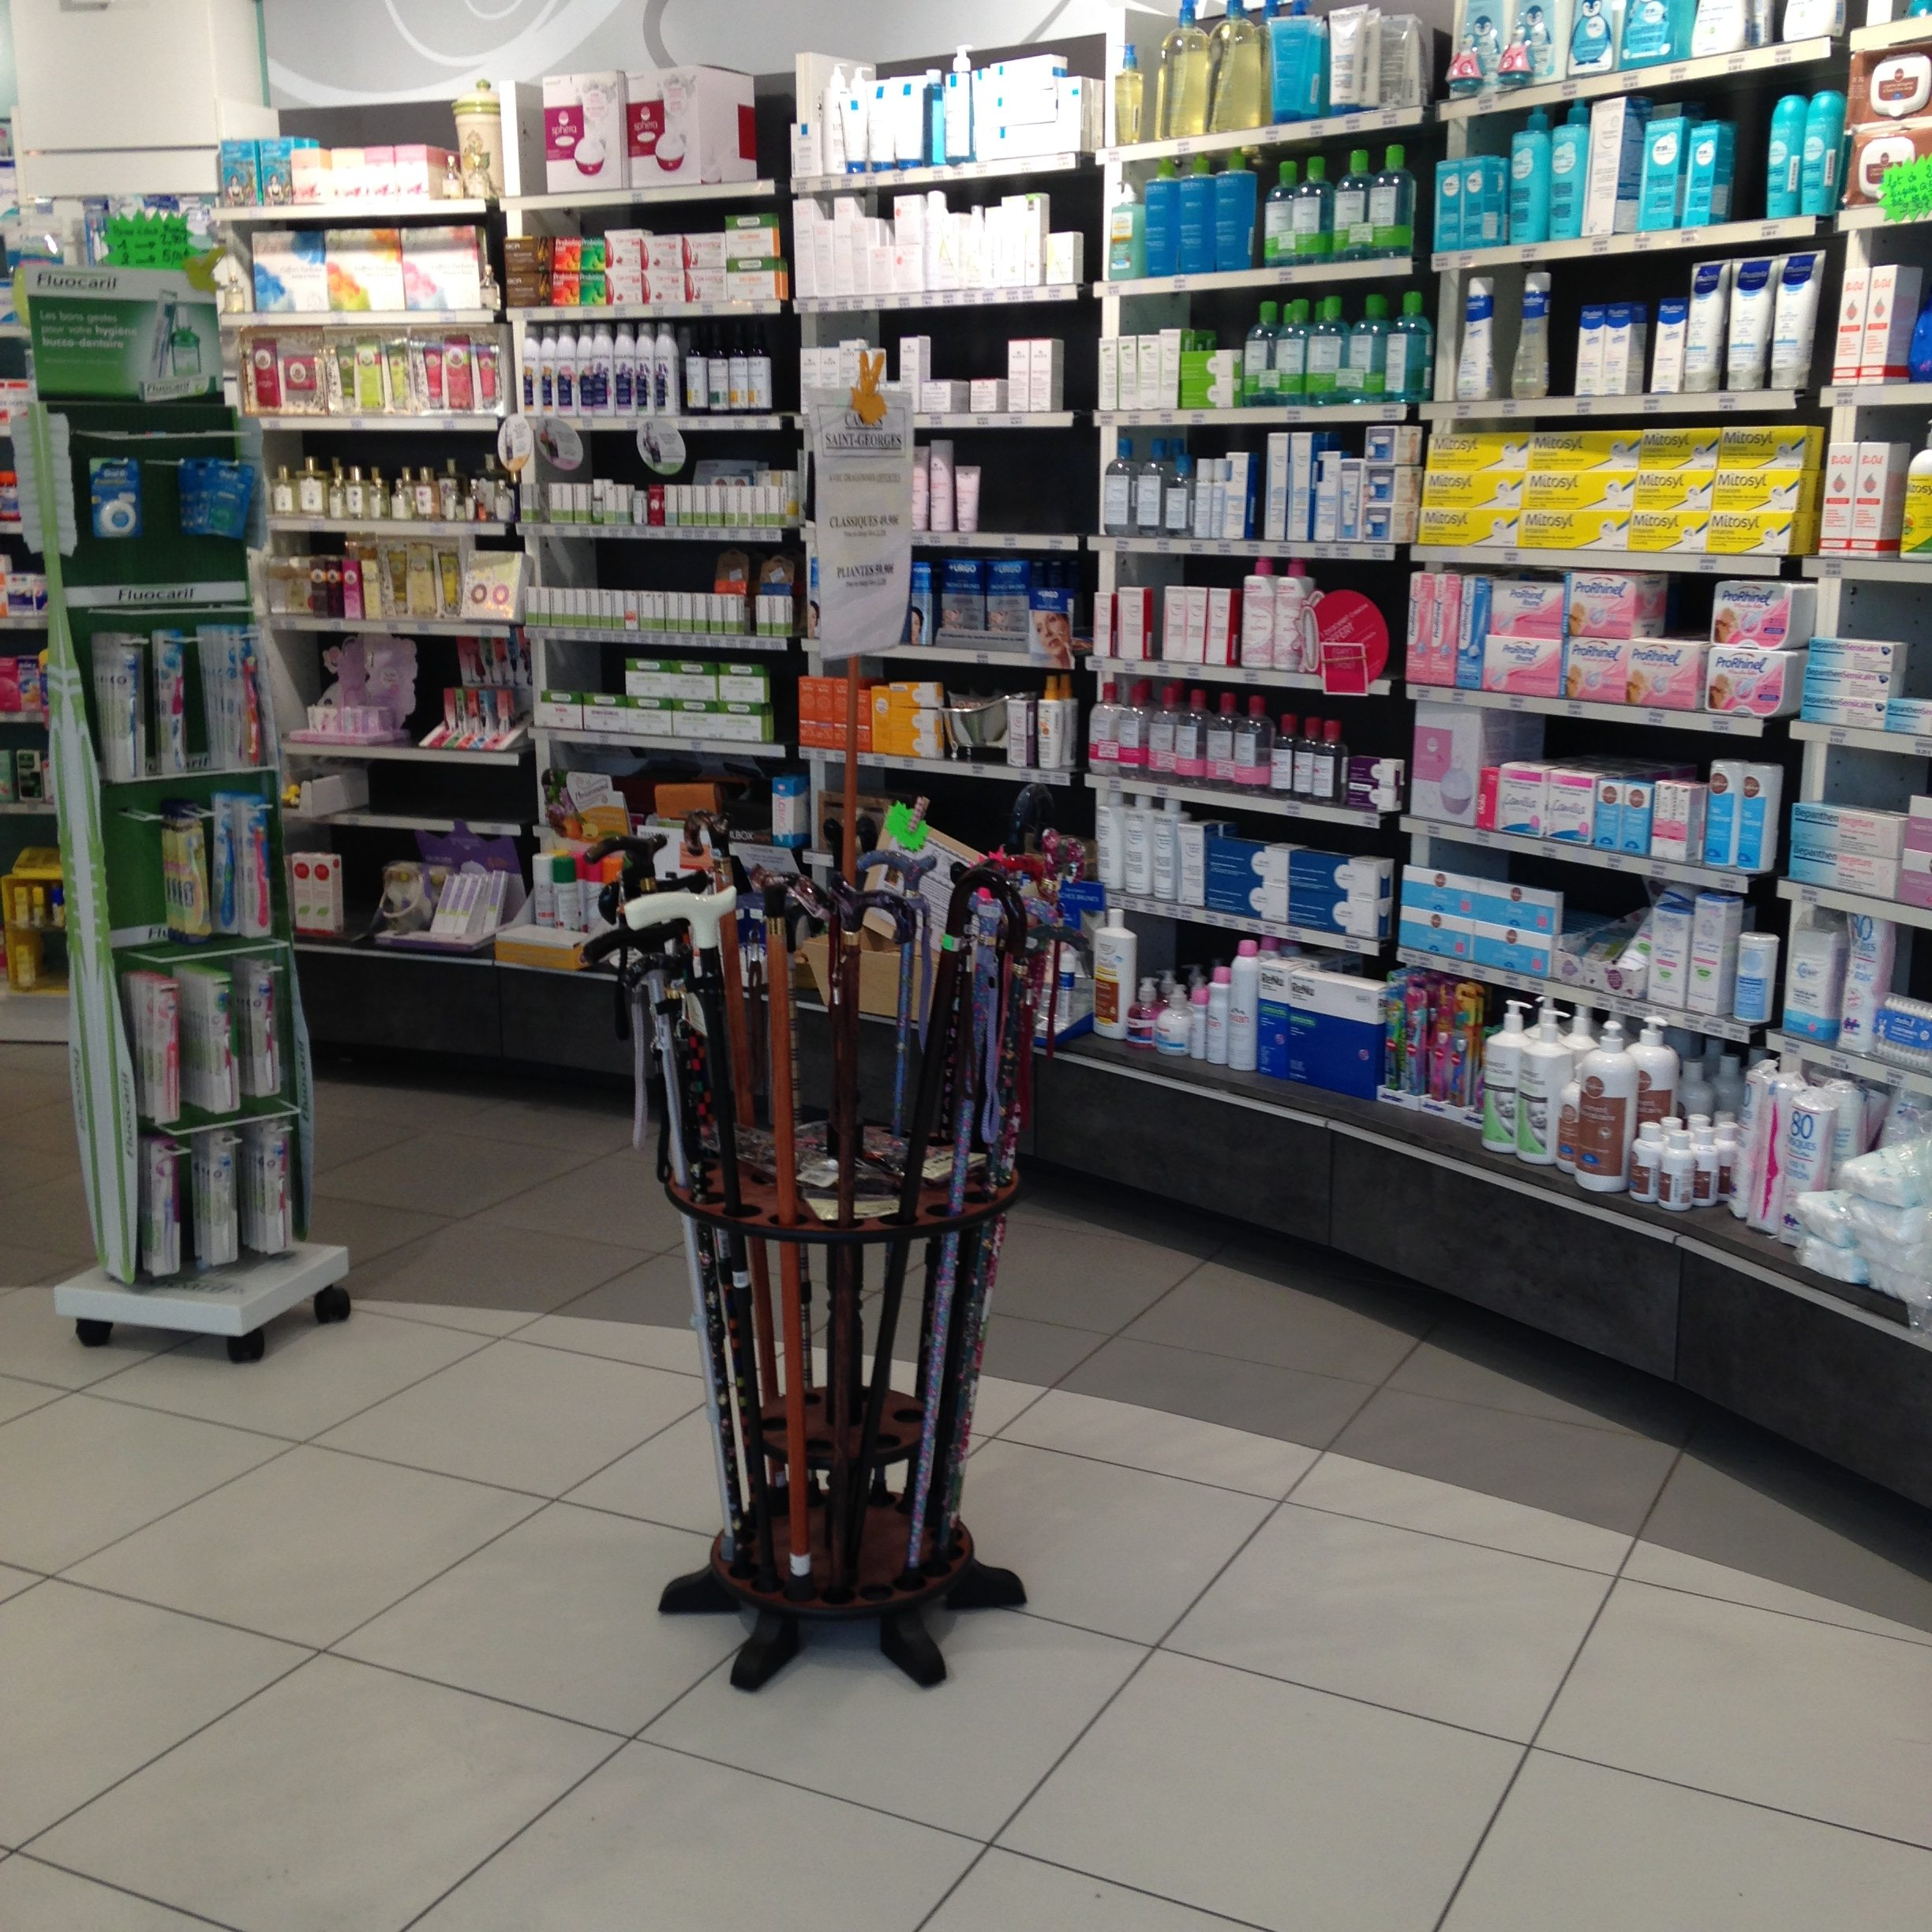 pharmacie d'officine moderne, Photo 2